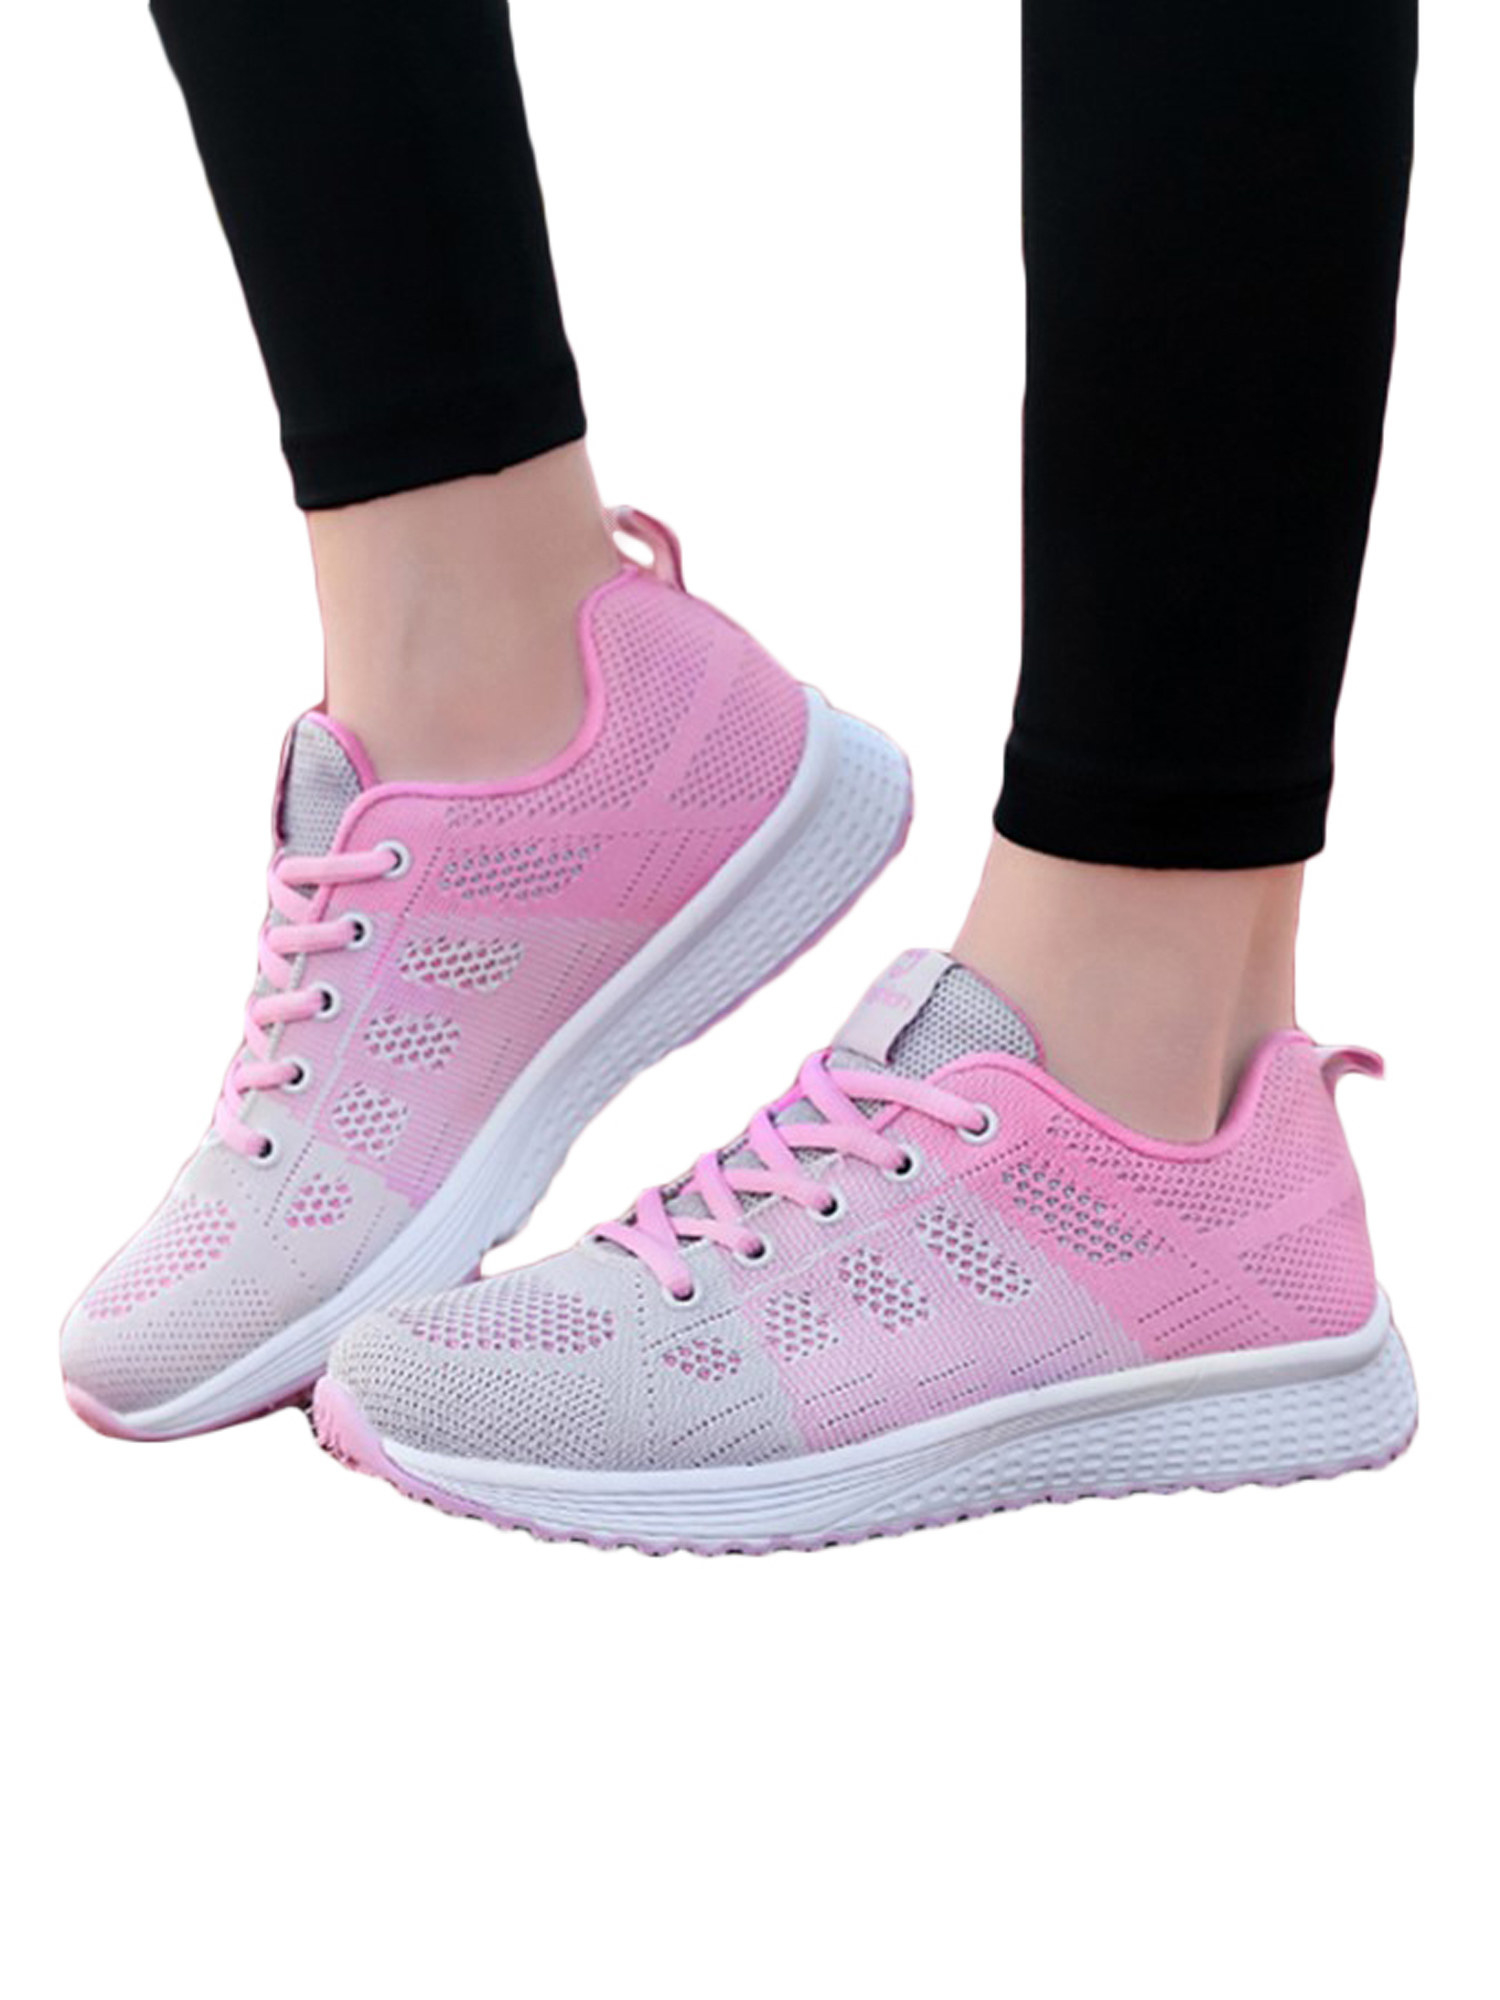 Model wearing ombre pink shoes